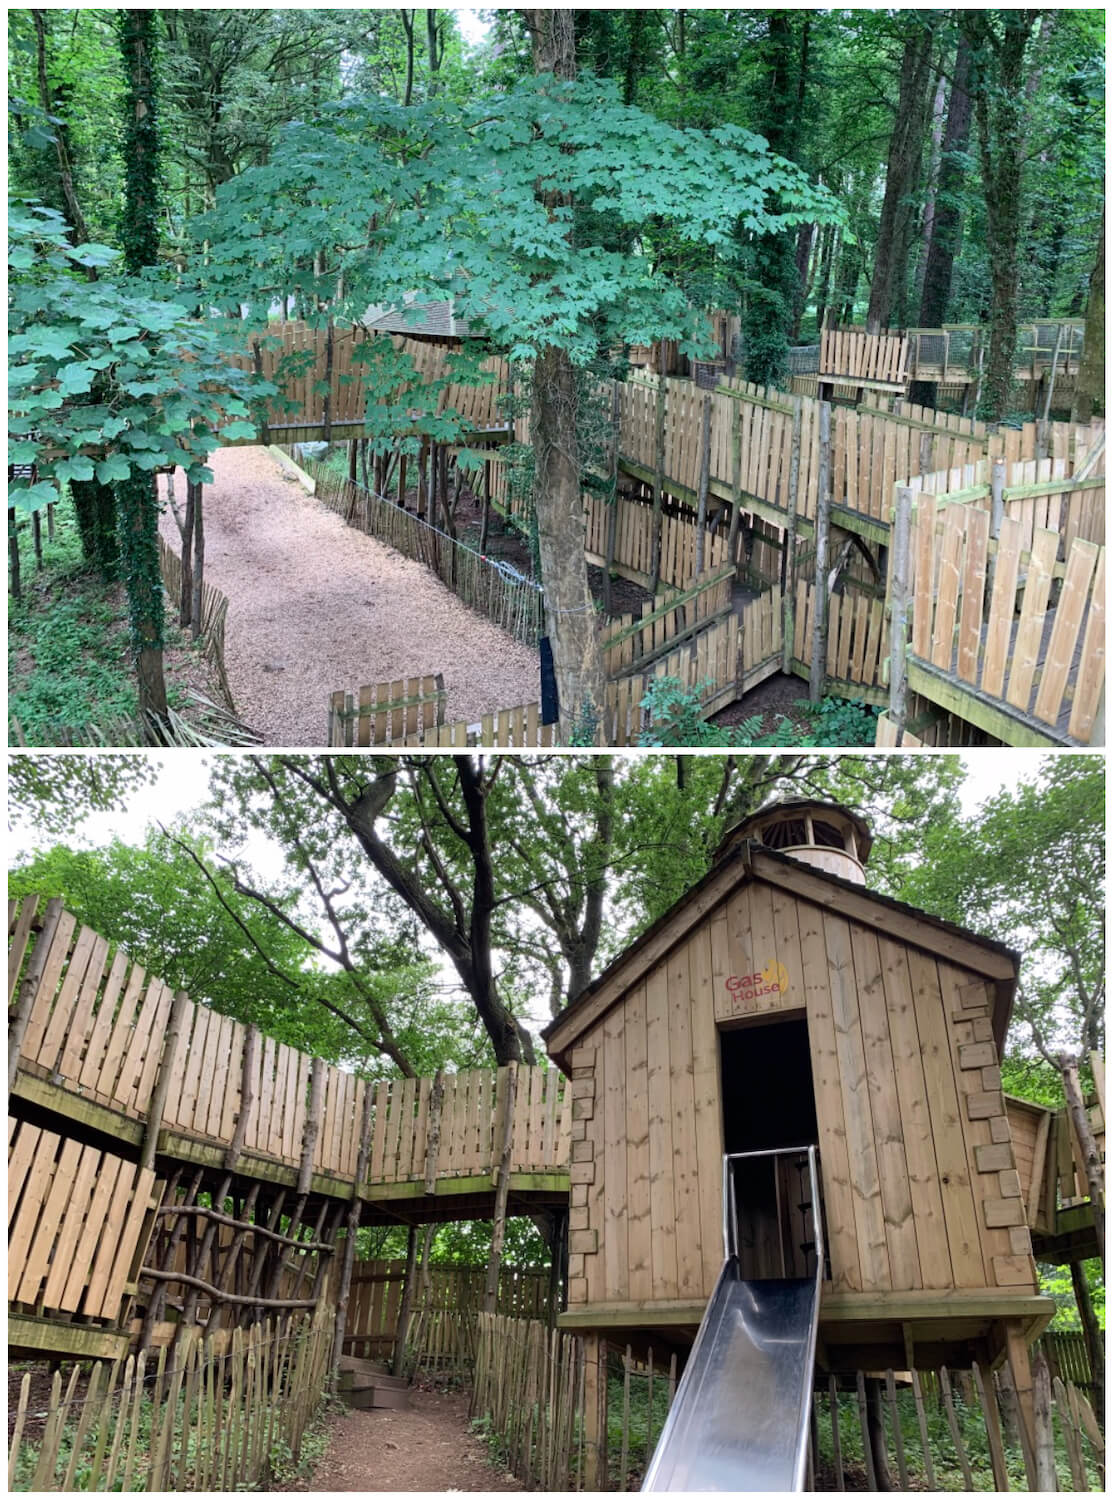 Culzean Castle and Country Park - Adventure Cove and Wild Woodland